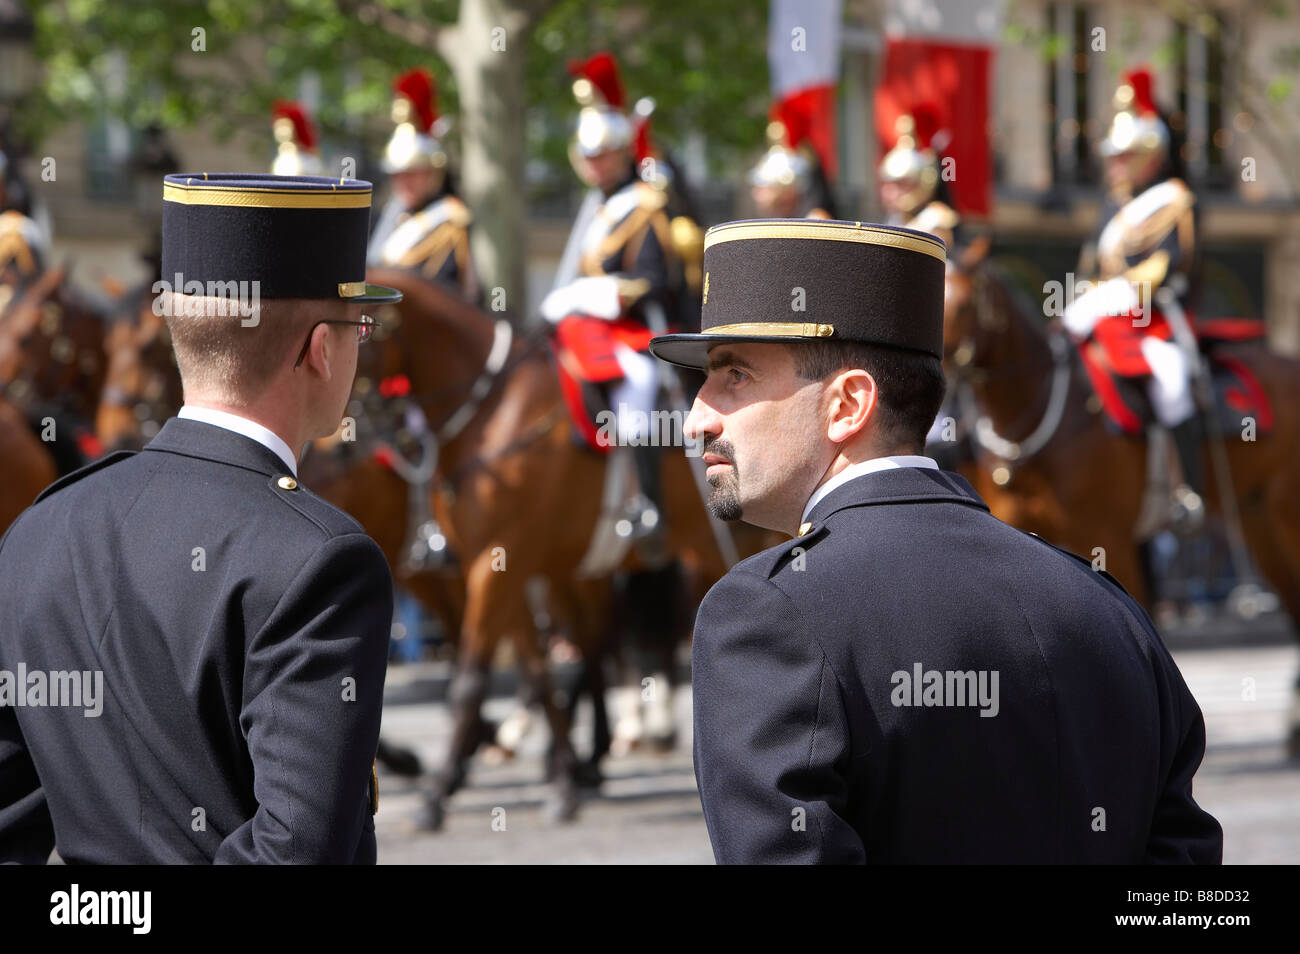 gendarmes (police) & French Cavalry (Presidential escort) on the Champs Elysses, Paris, France - Stock Image